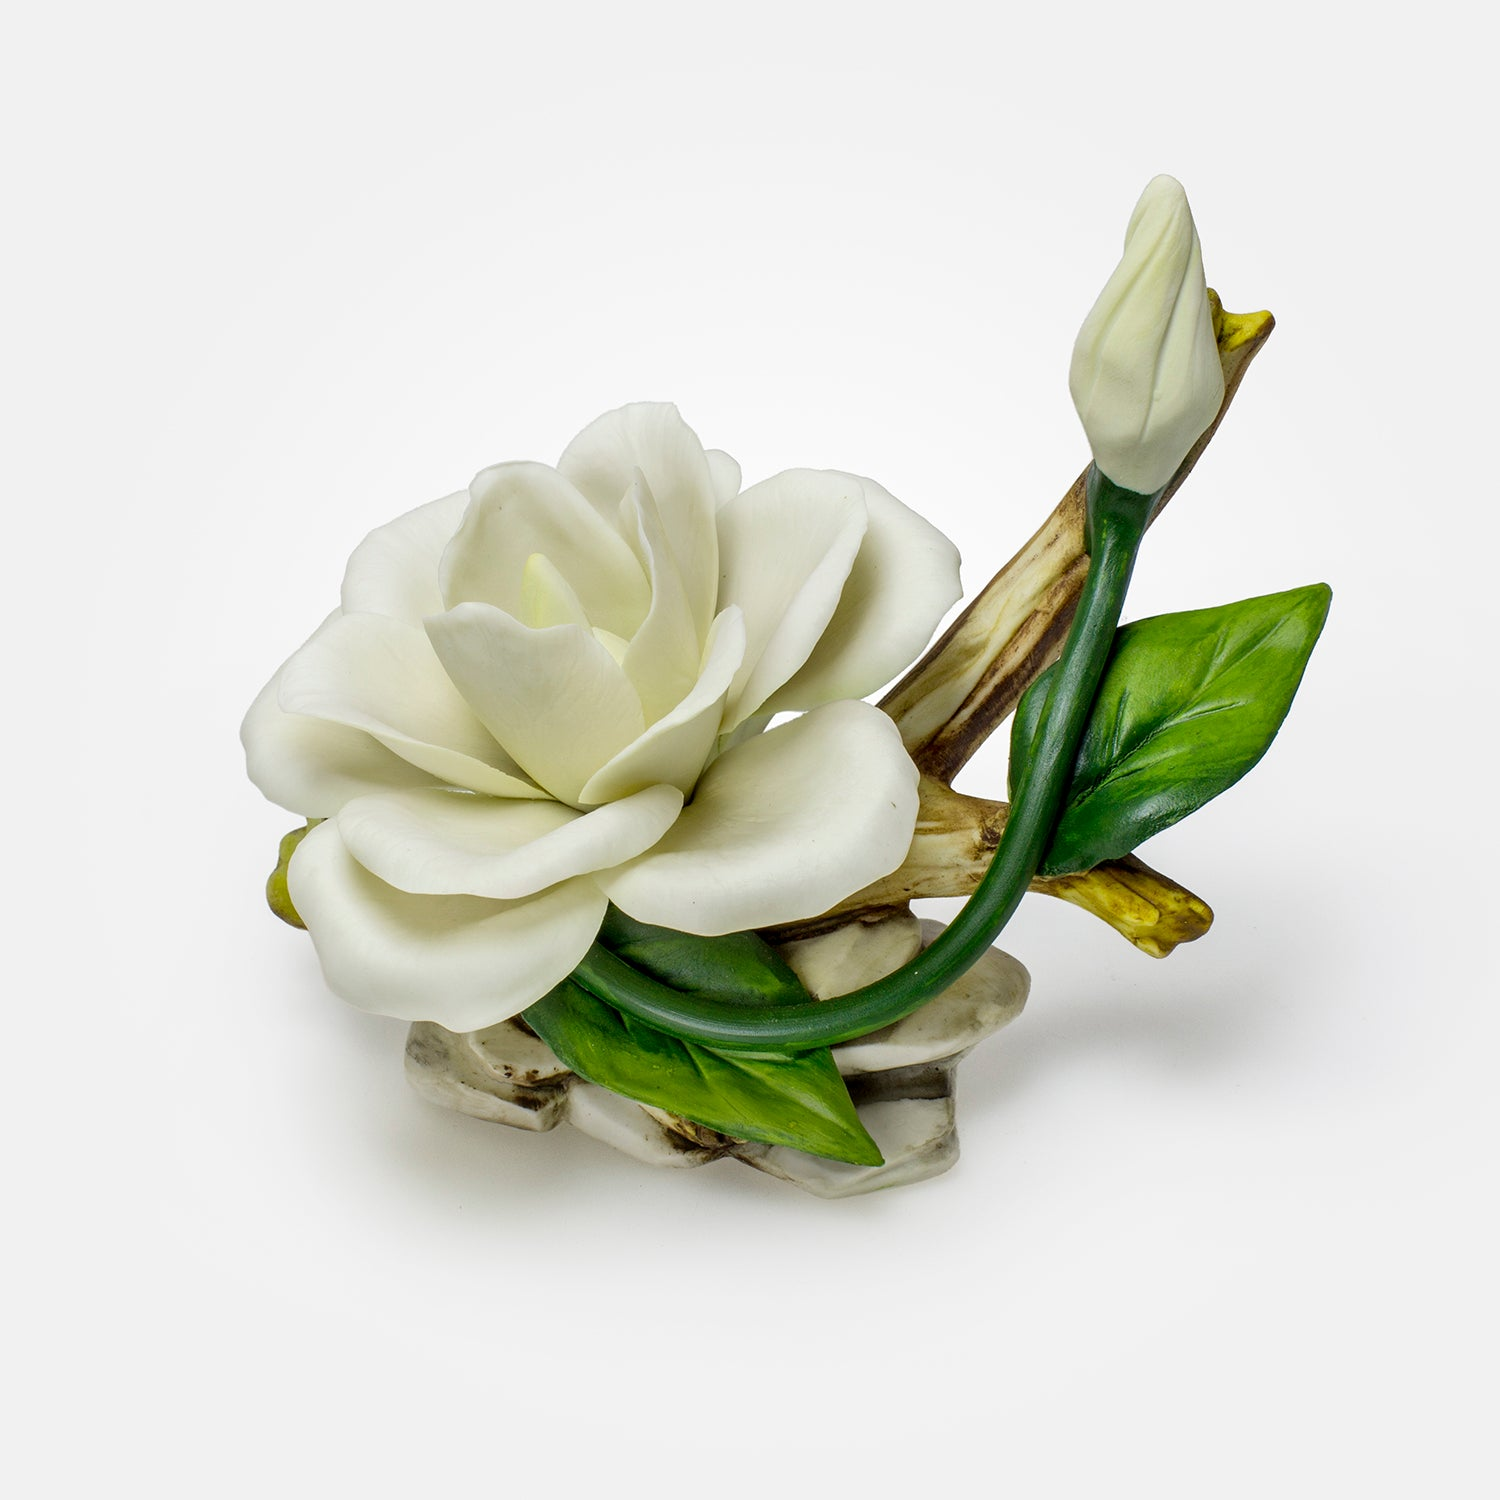 Handmade Porcelain White Rose with Bud by NAPOLEON Capodimonte - Italy - Var1